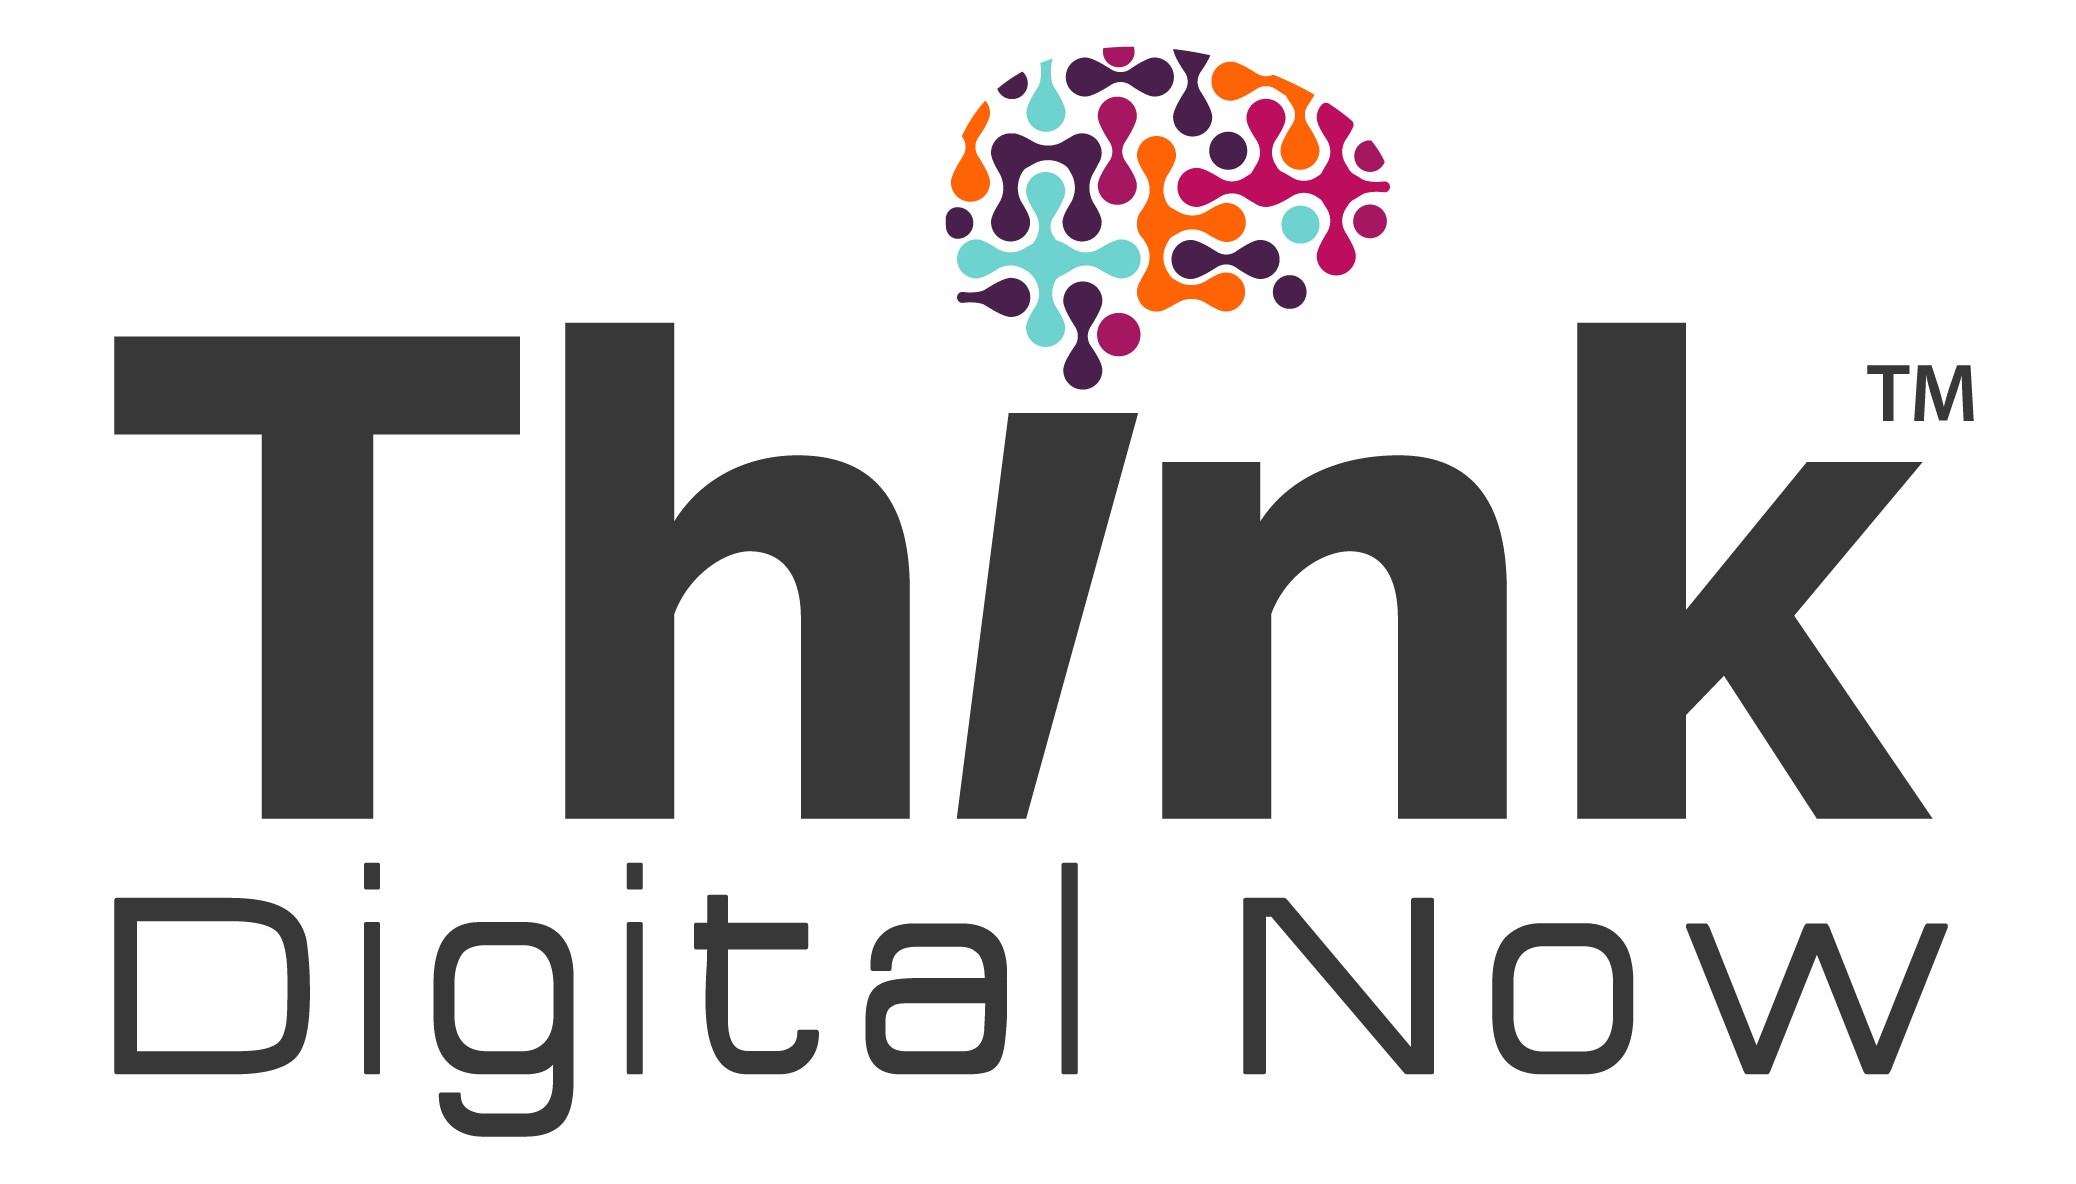 Think Digital Now®